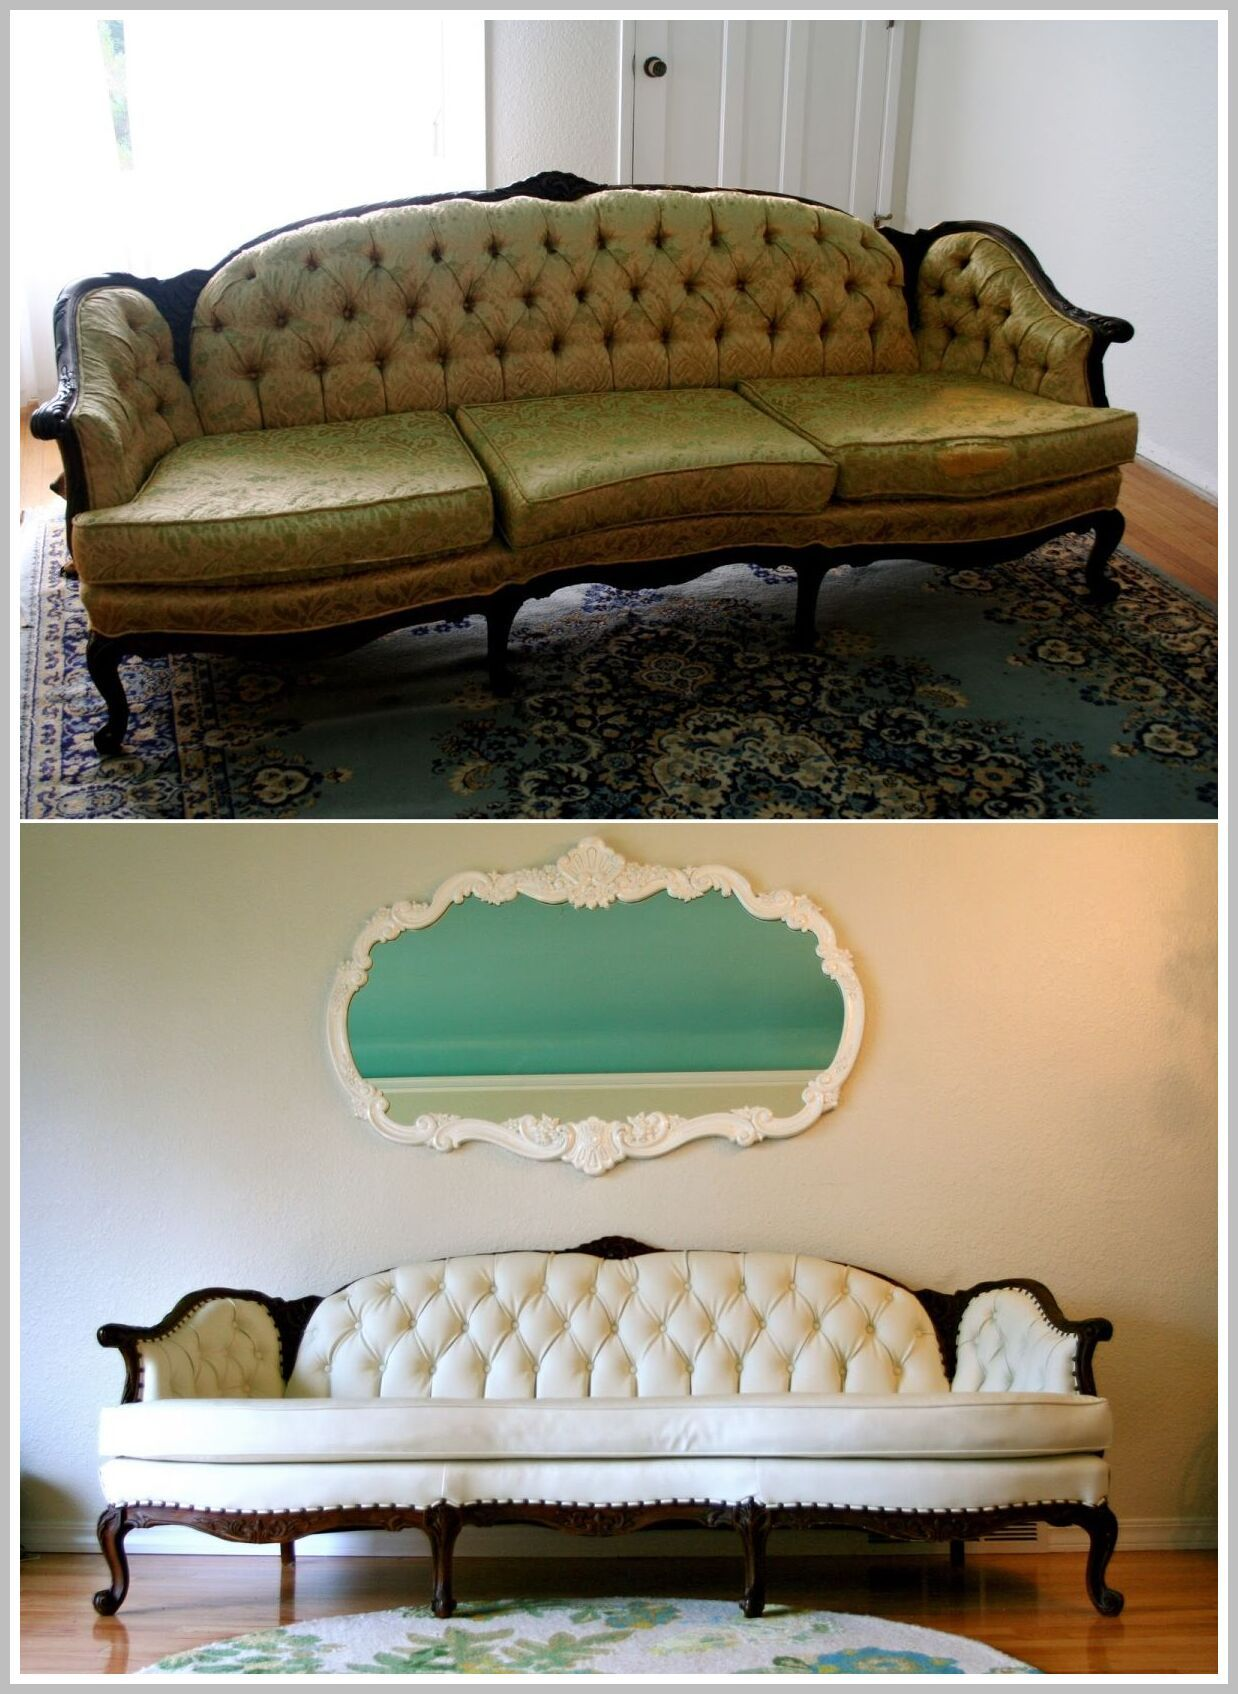 46 Reference Of Sofa Makeover Meja Sofa Makeover Couch Makeover Cushions On Sofa